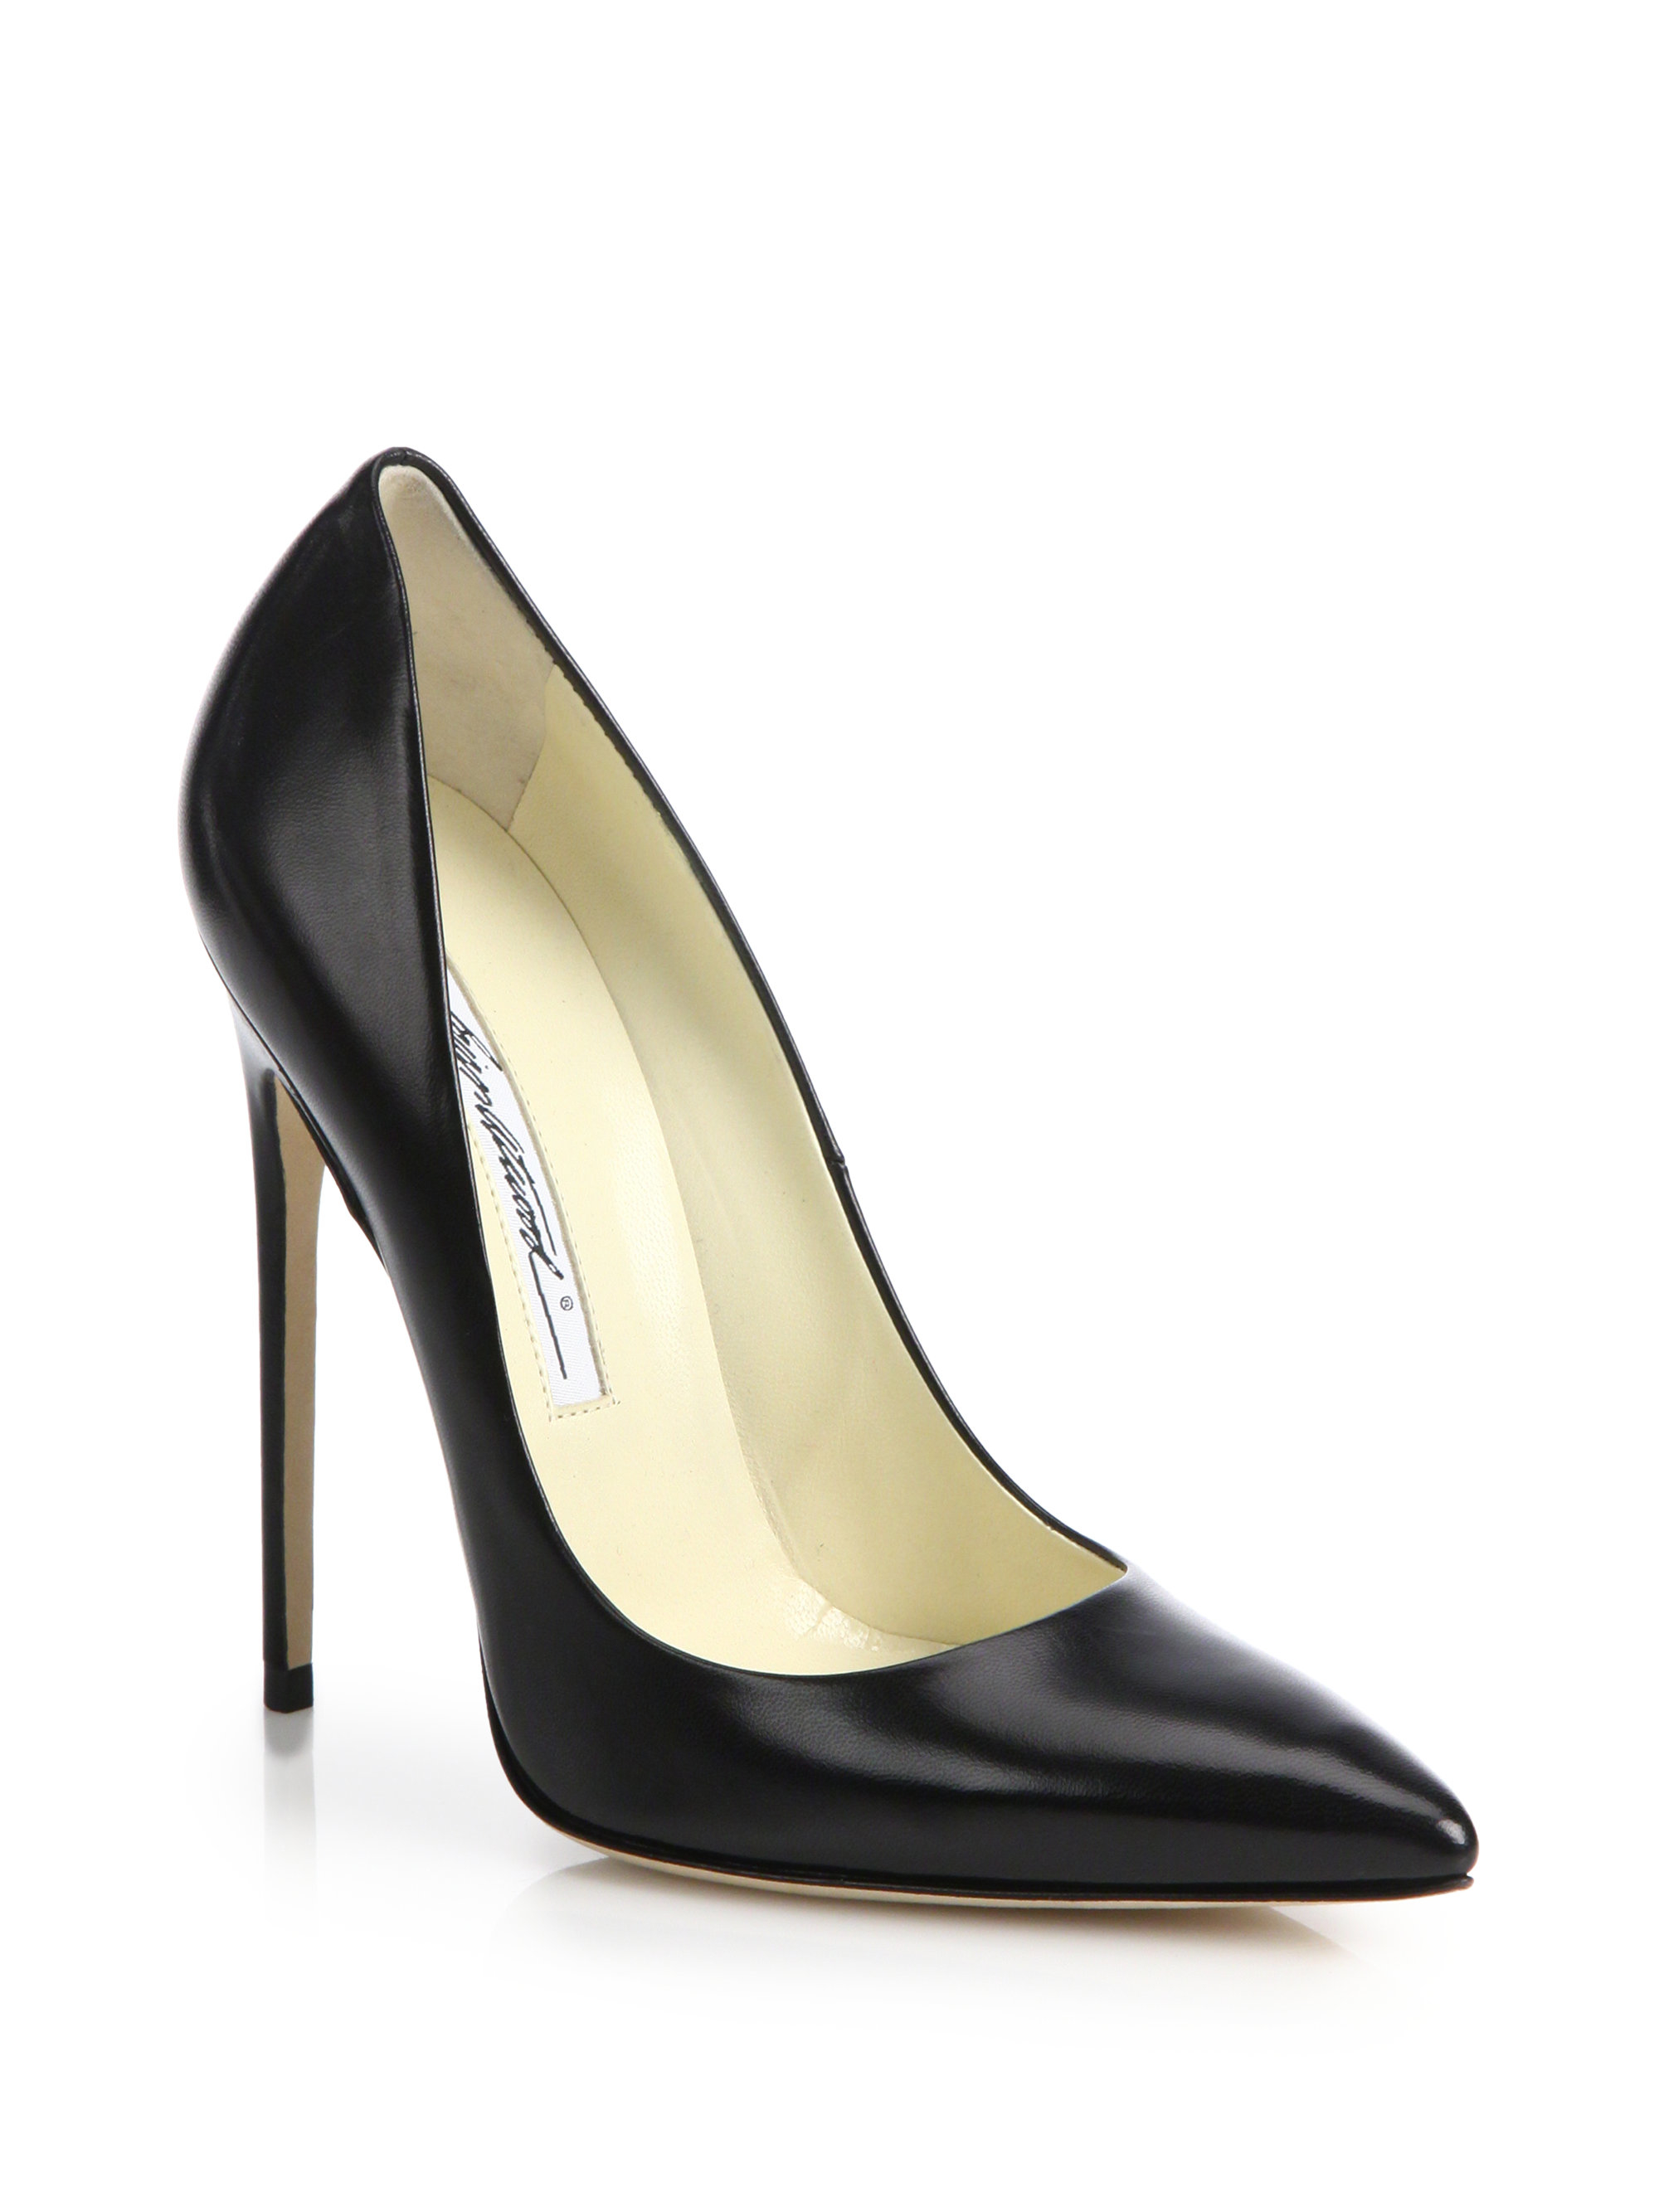 Brian atwood Leather Point-toe Pumps in Black